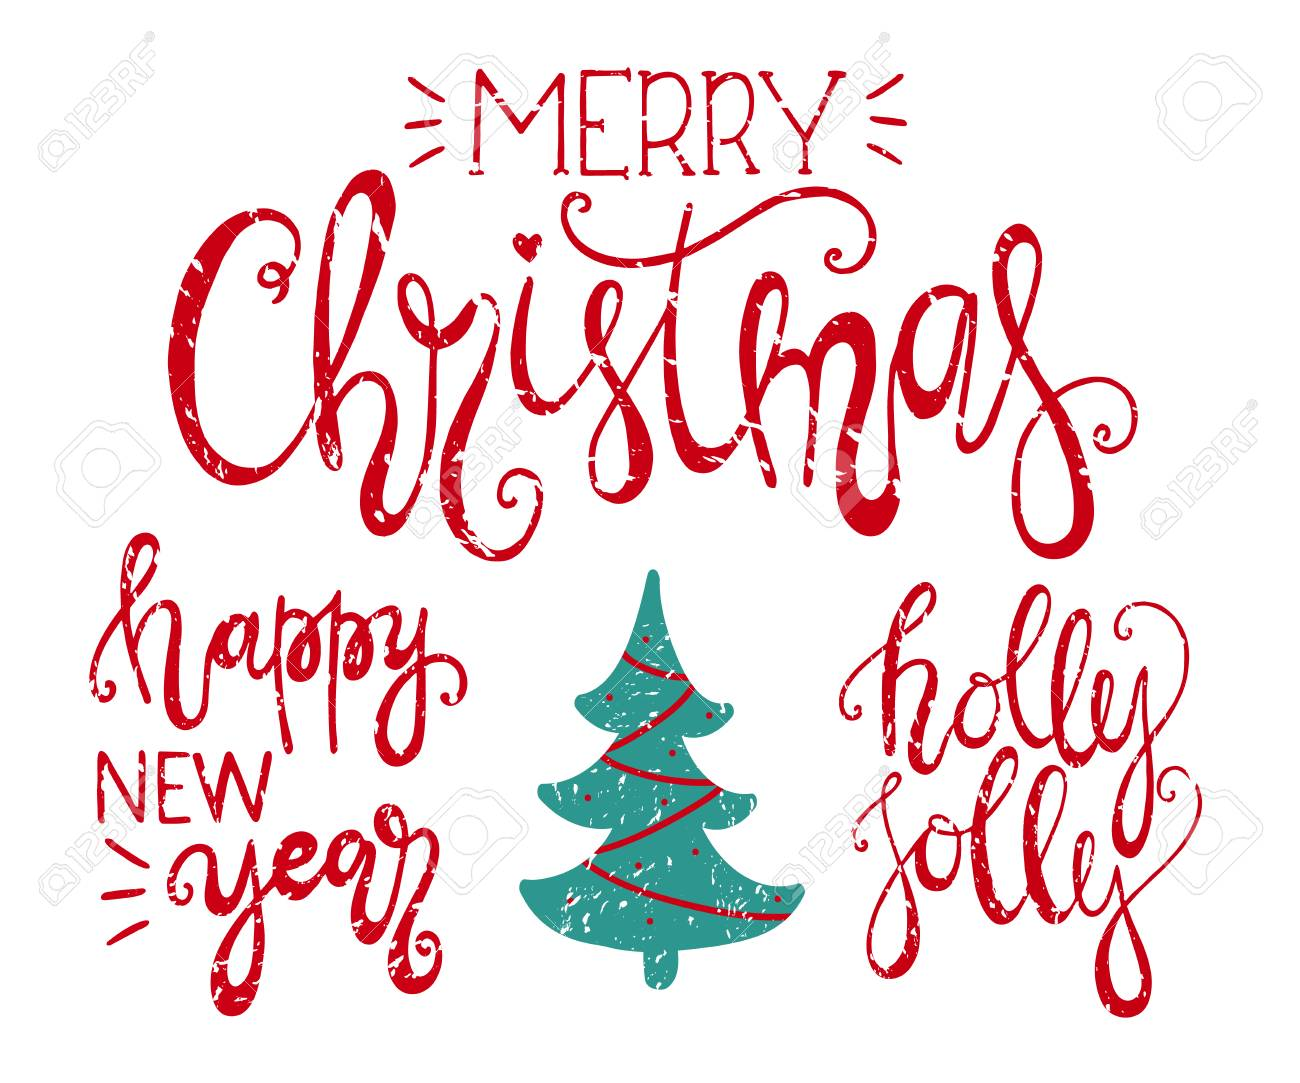 merry christmas happy new year and holly jolly handdrawn lettering xmas typography poster